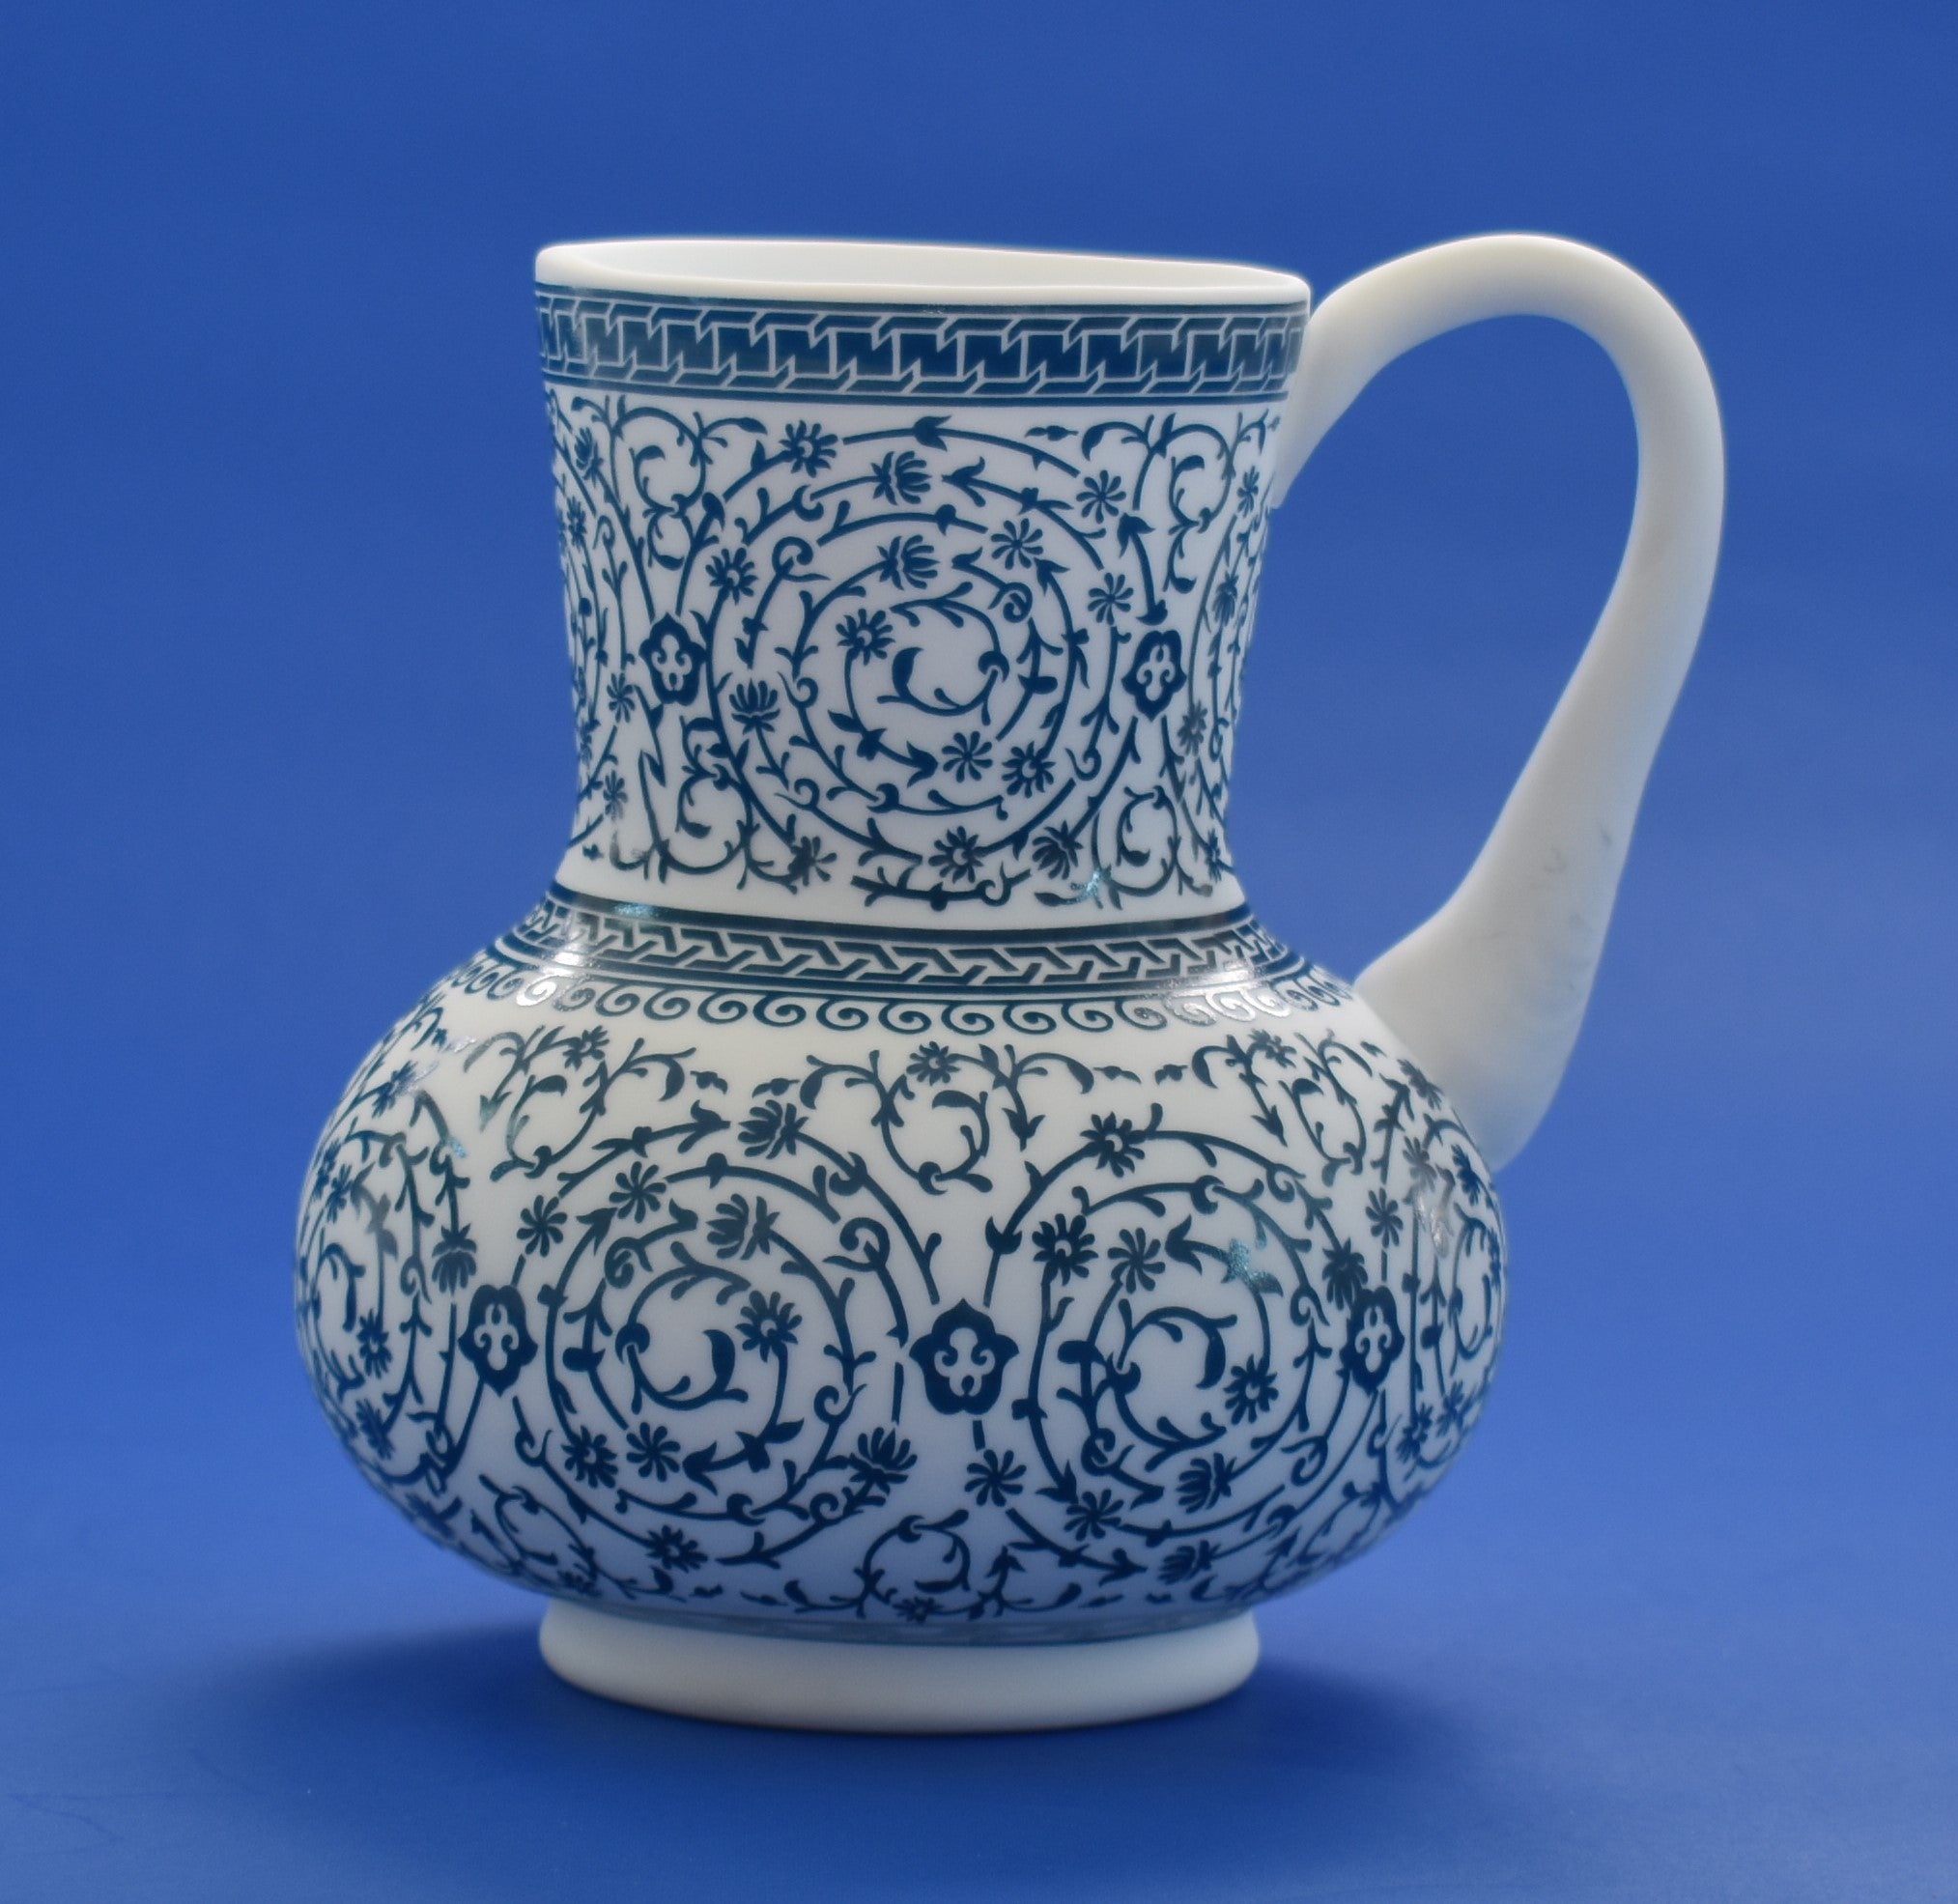 Decorative Vessel with Handle (Halic Isi Dipper)